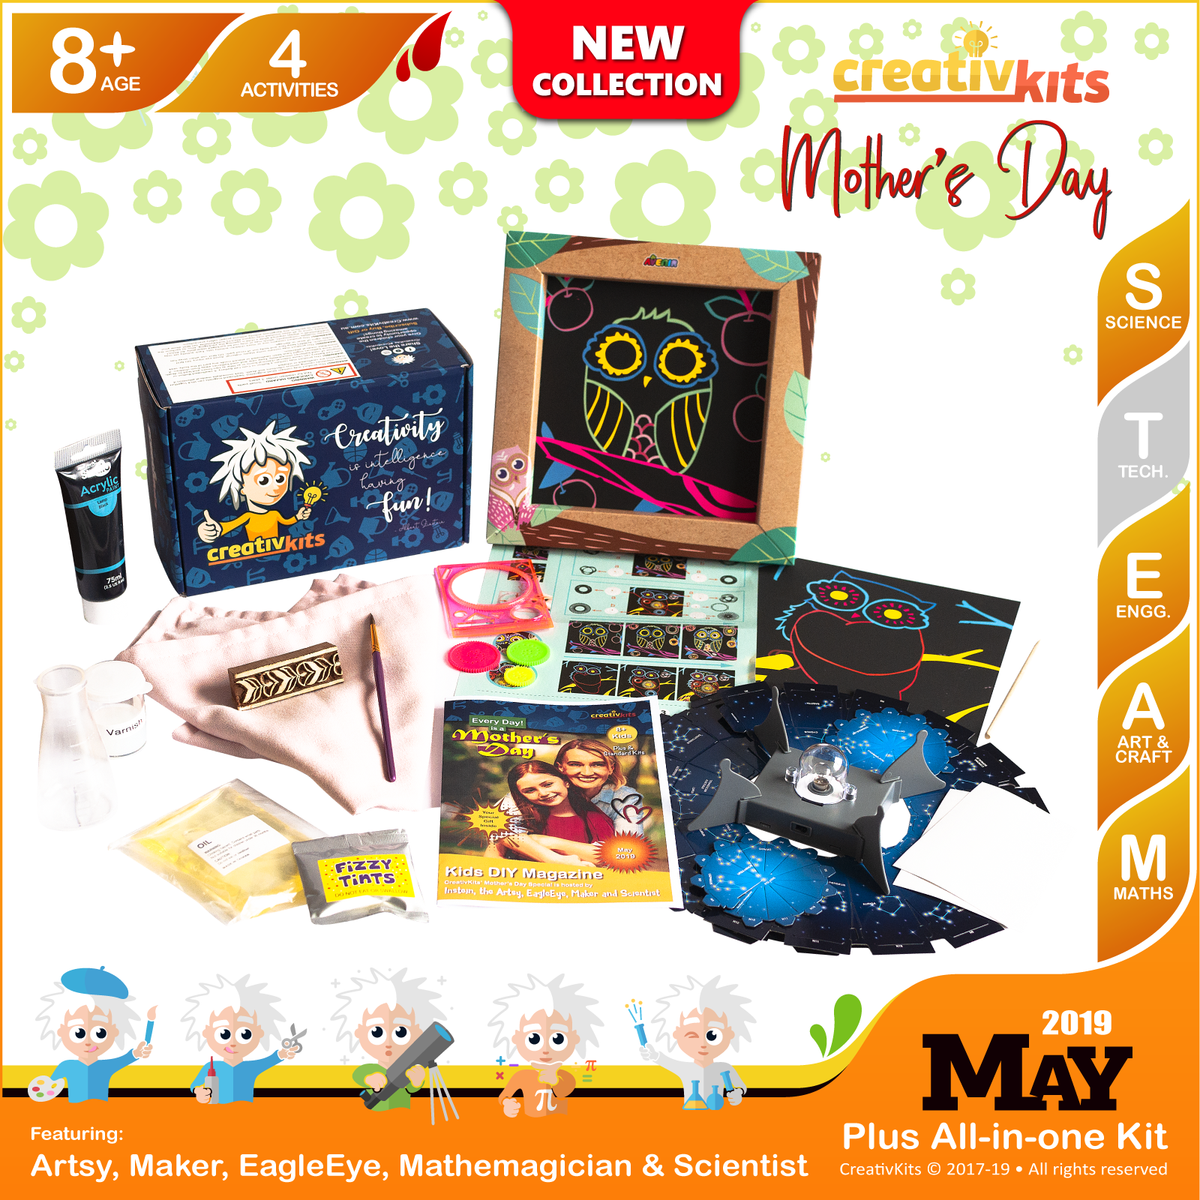 May Plus Kit • Age 8 plus • Night Sky Projector, MYO Lava Lamp, Block Printed Cushion and Spiro Art